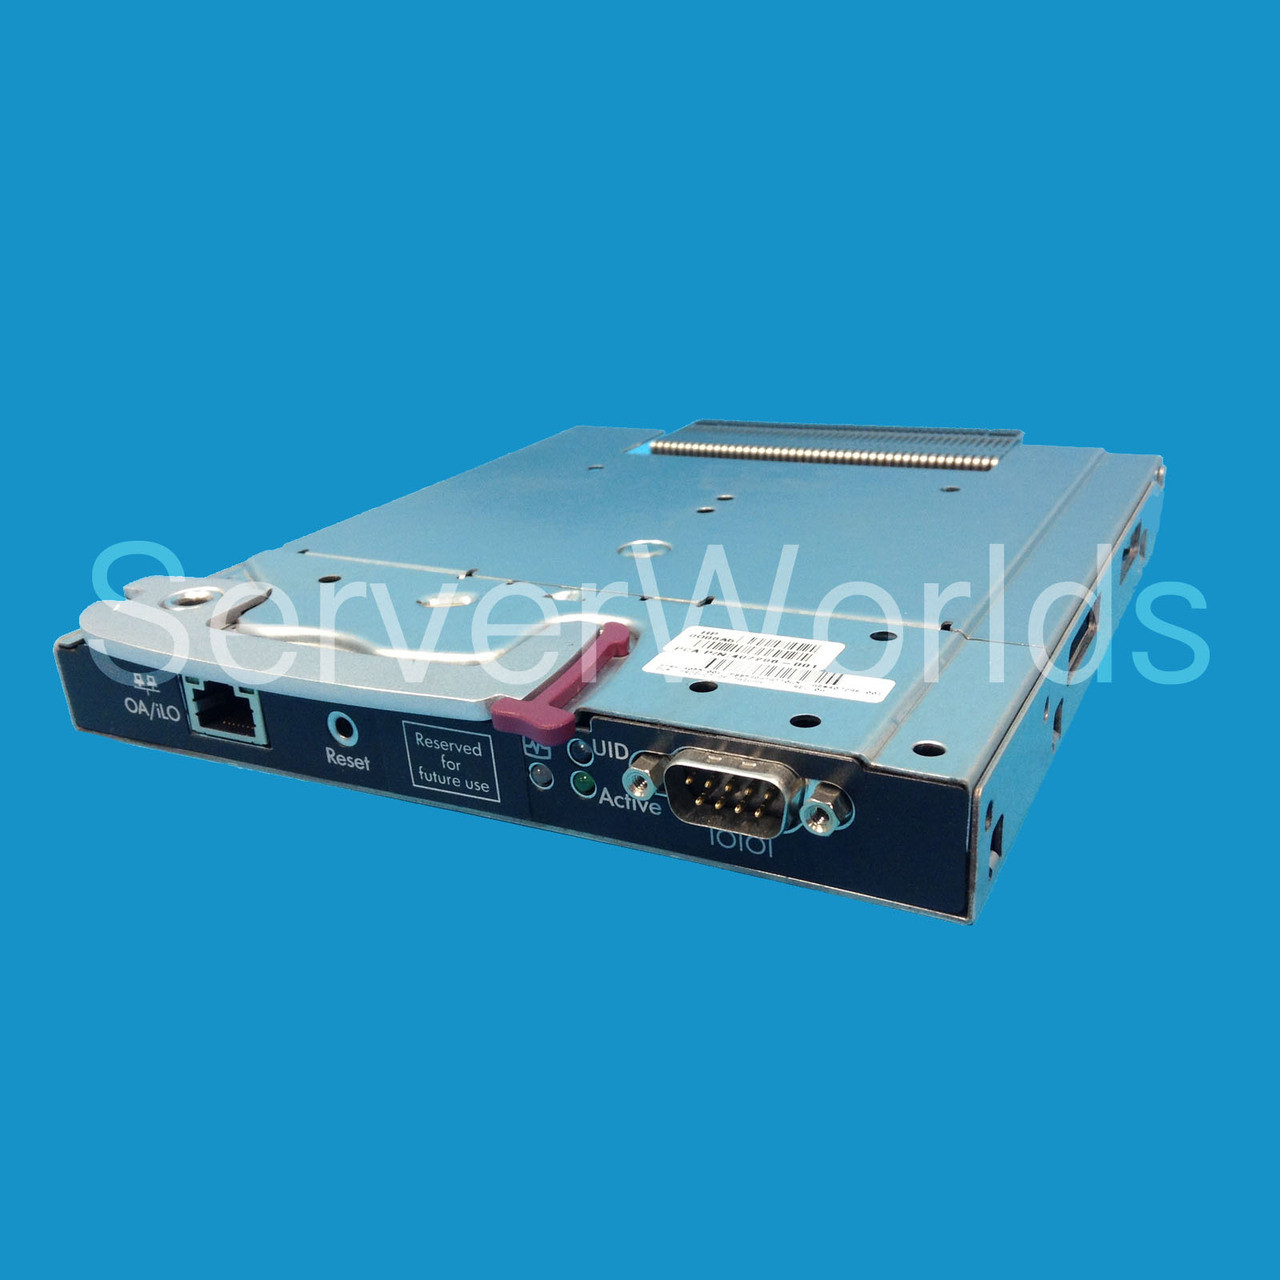 HP 414055-001 | C7000 Management Module | HP 407296